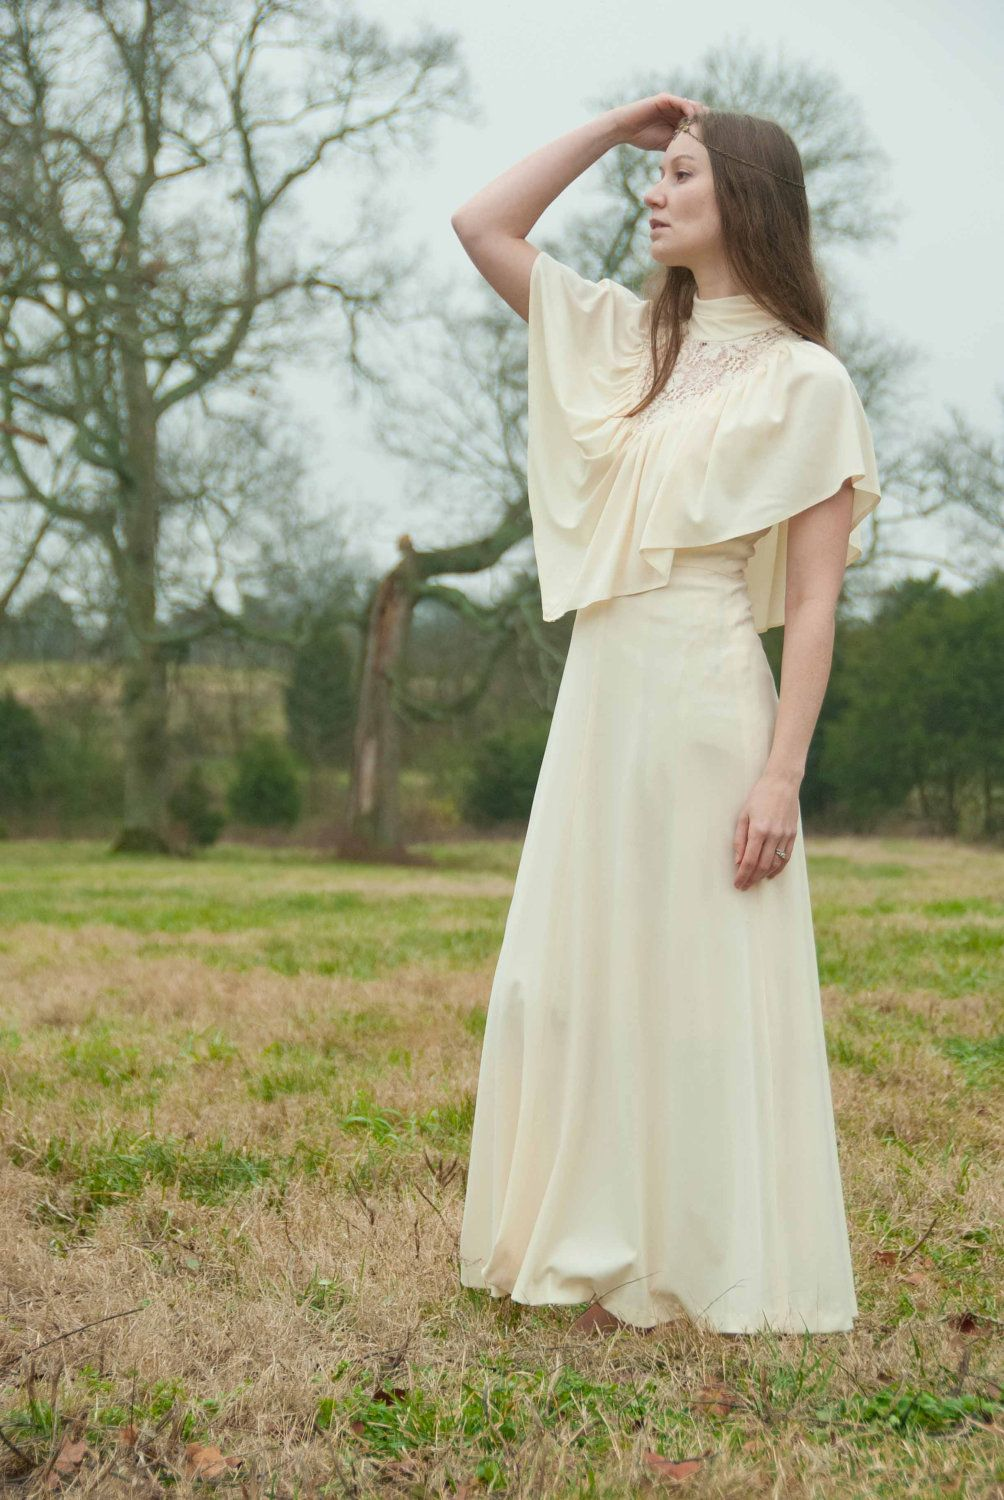 S boho dress boho wedding dress spring fashion cream